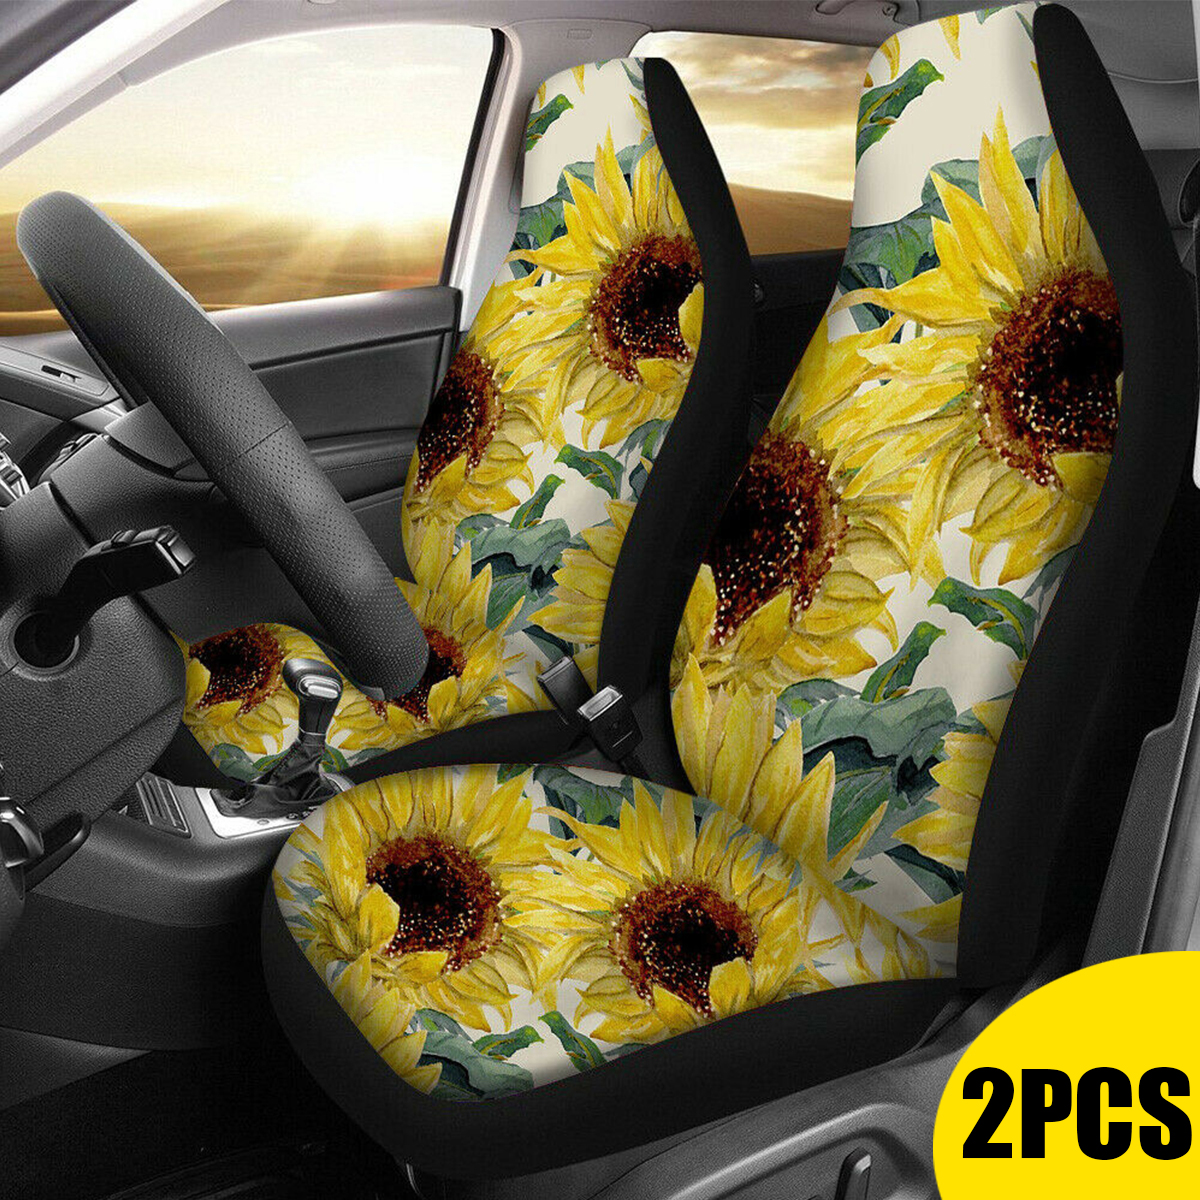 Sunflower 3D Print Car Seat Covers Washable Universal 2pc Front Car Seat Cover Protectors for Most Car Truck SUV Van Black